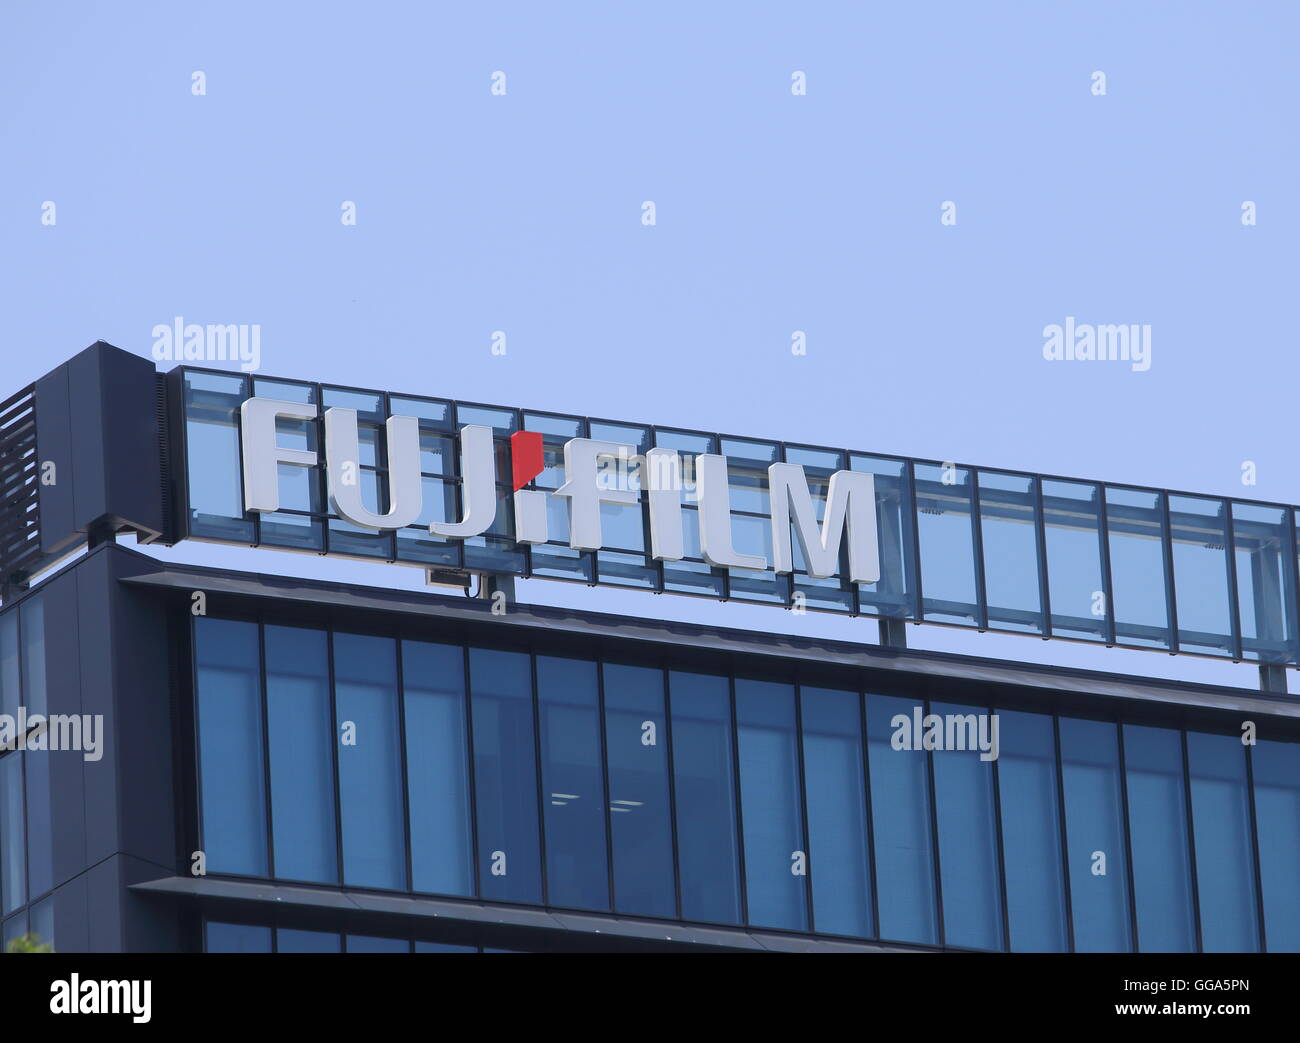 Fujifilm company logo a Japanese multinational photography and imaging company headquartered in Tokyo. - Stock Image